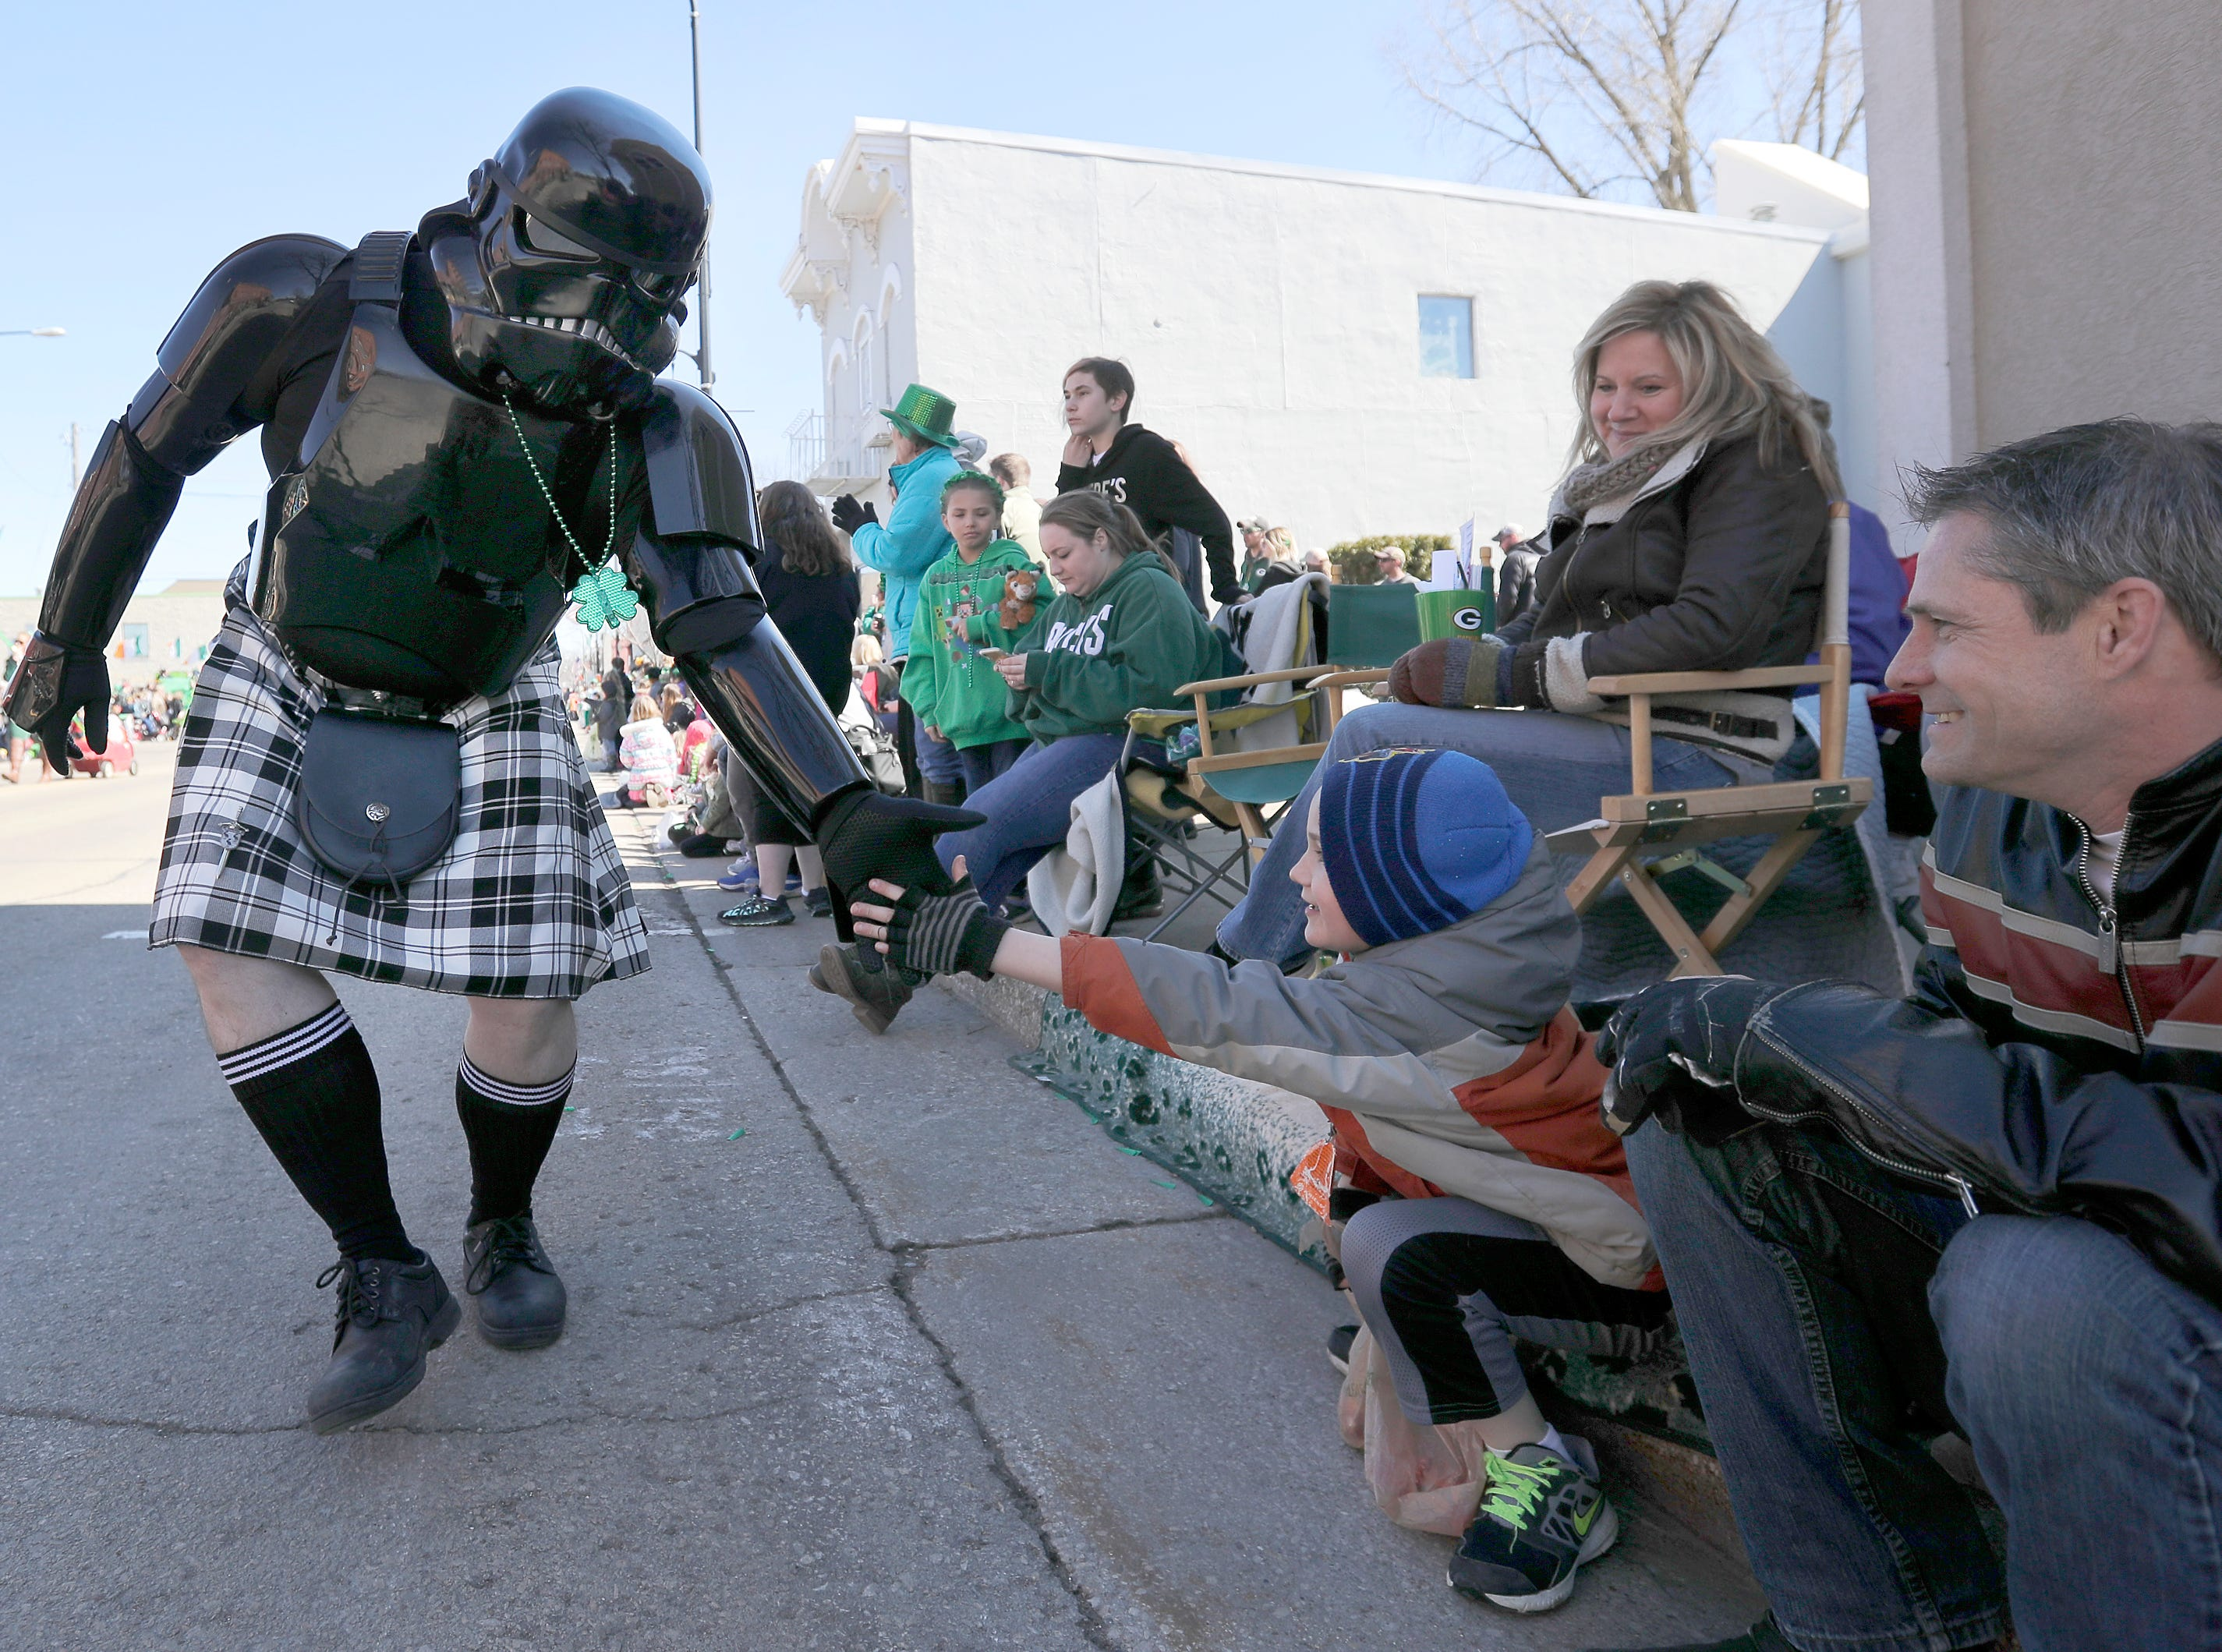 Gabe Knaus high fives a kilt clad Darth Vader during the New Dublin St. Patrick's Day Grand Parade on Saturday, March 23, 2019, in New London, Wis.Wm. Glasheen/USA TODAY NETWORK-Wisconsin.